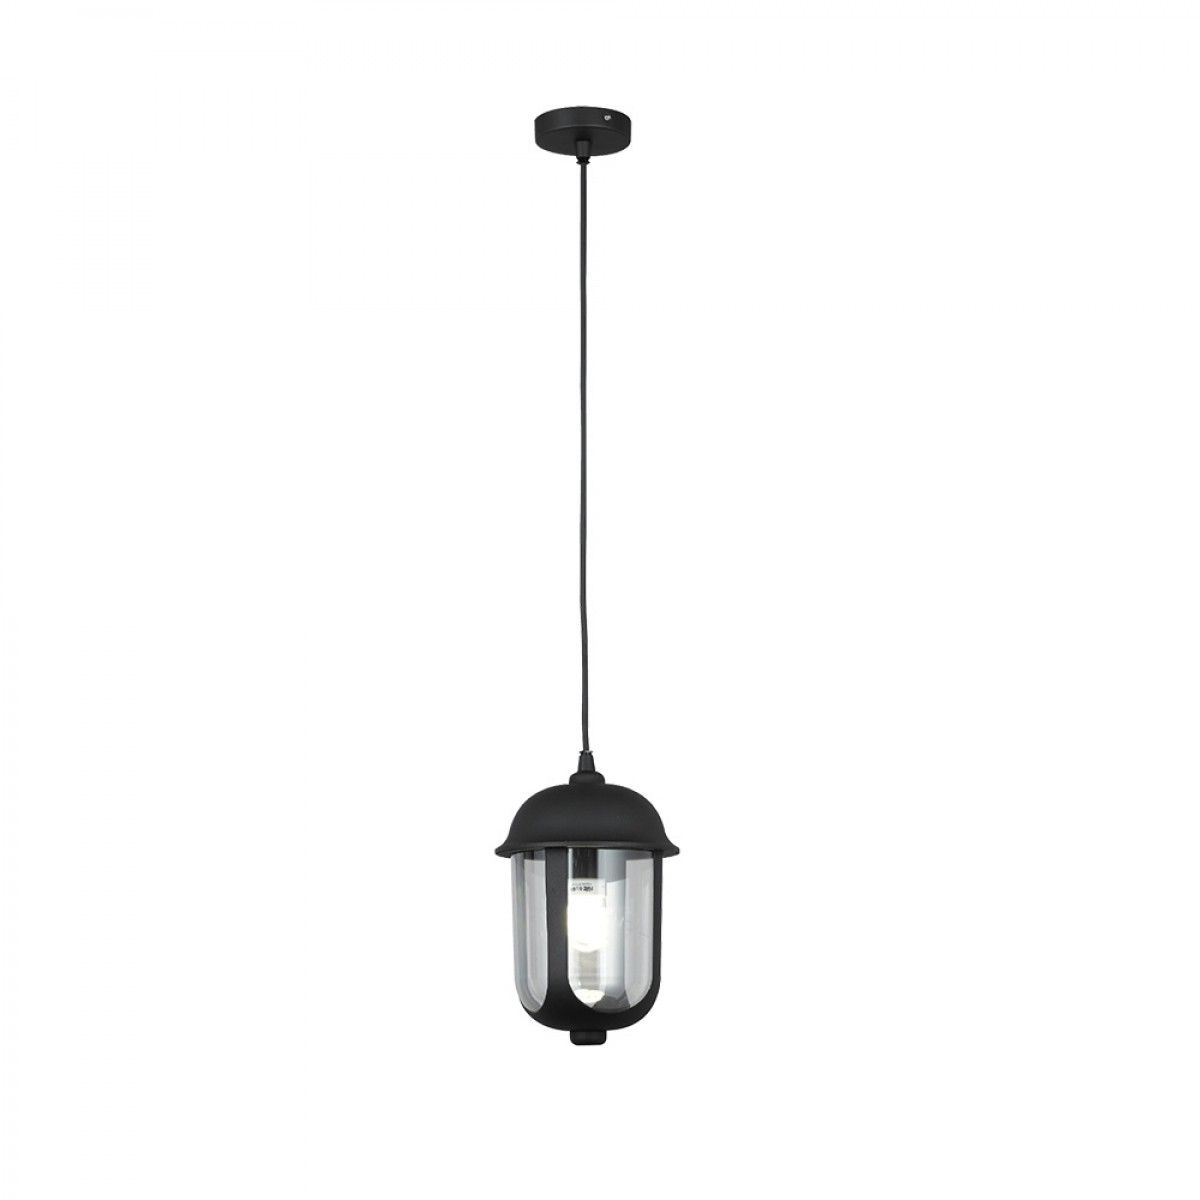 Redditch pendant light black pendants outdoor lighting fans redditch pendant light black pendants outdoor lighting fans mozeypictures